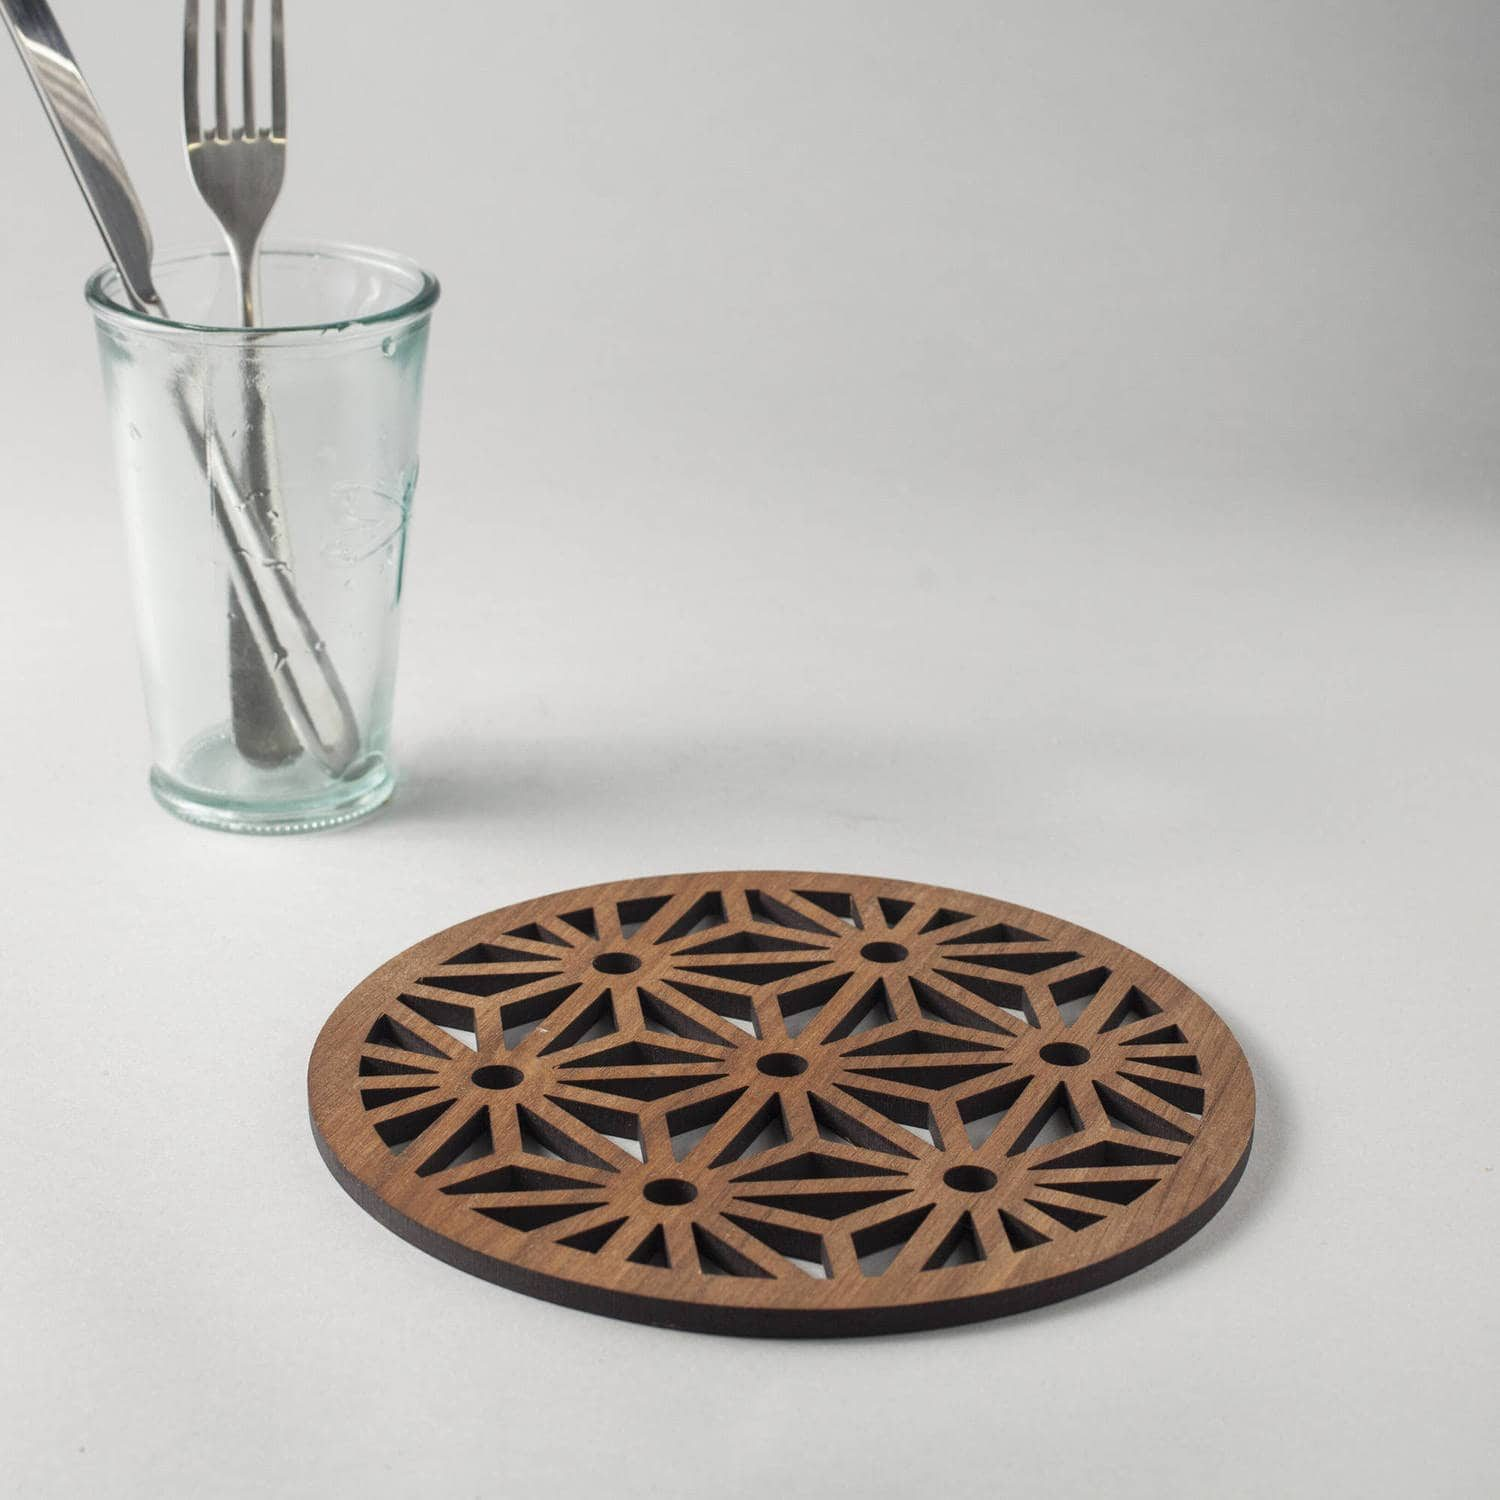 Asanoha pattern walnut drinks coasters, geometric design